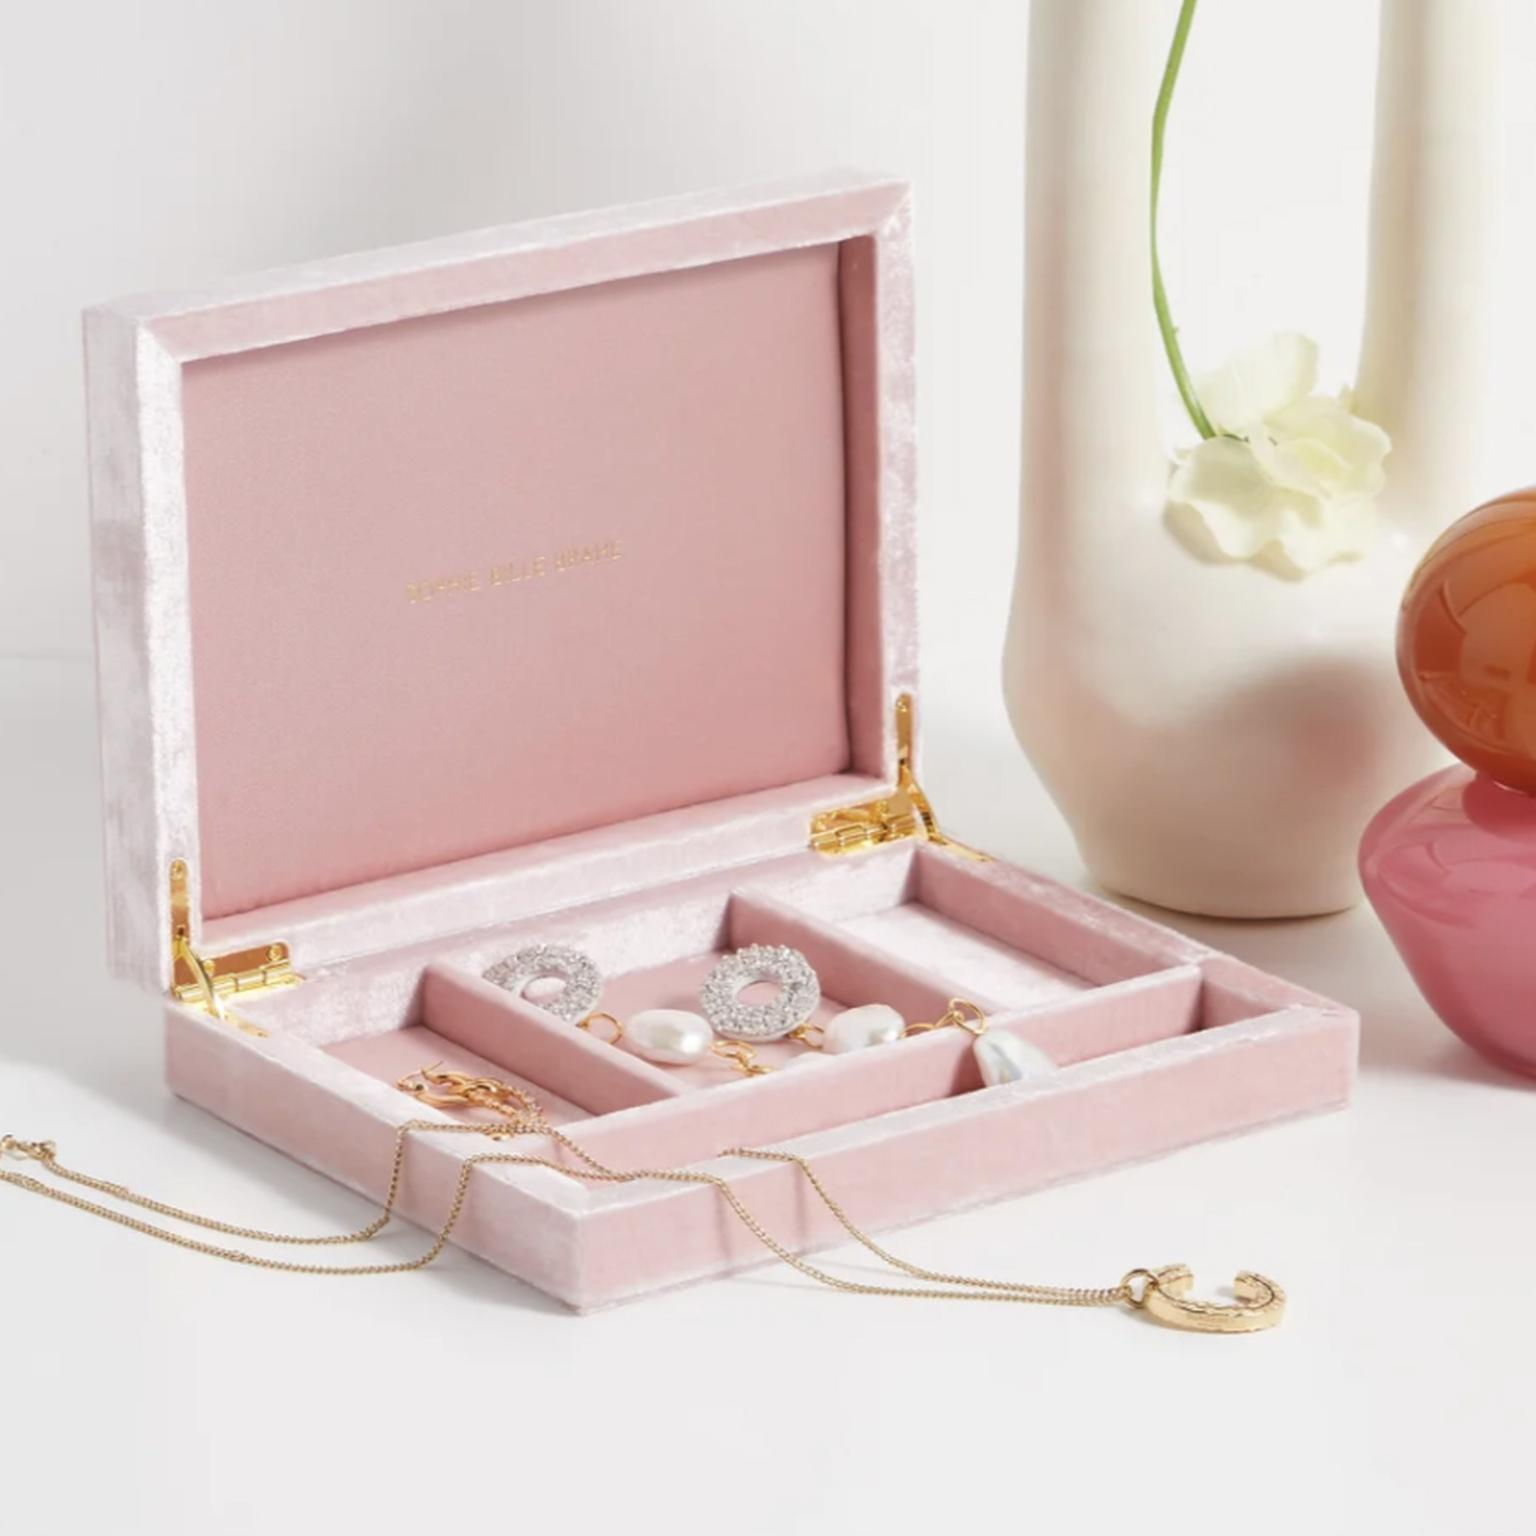 Velvet jewellery box by Sophie Bille Brahe